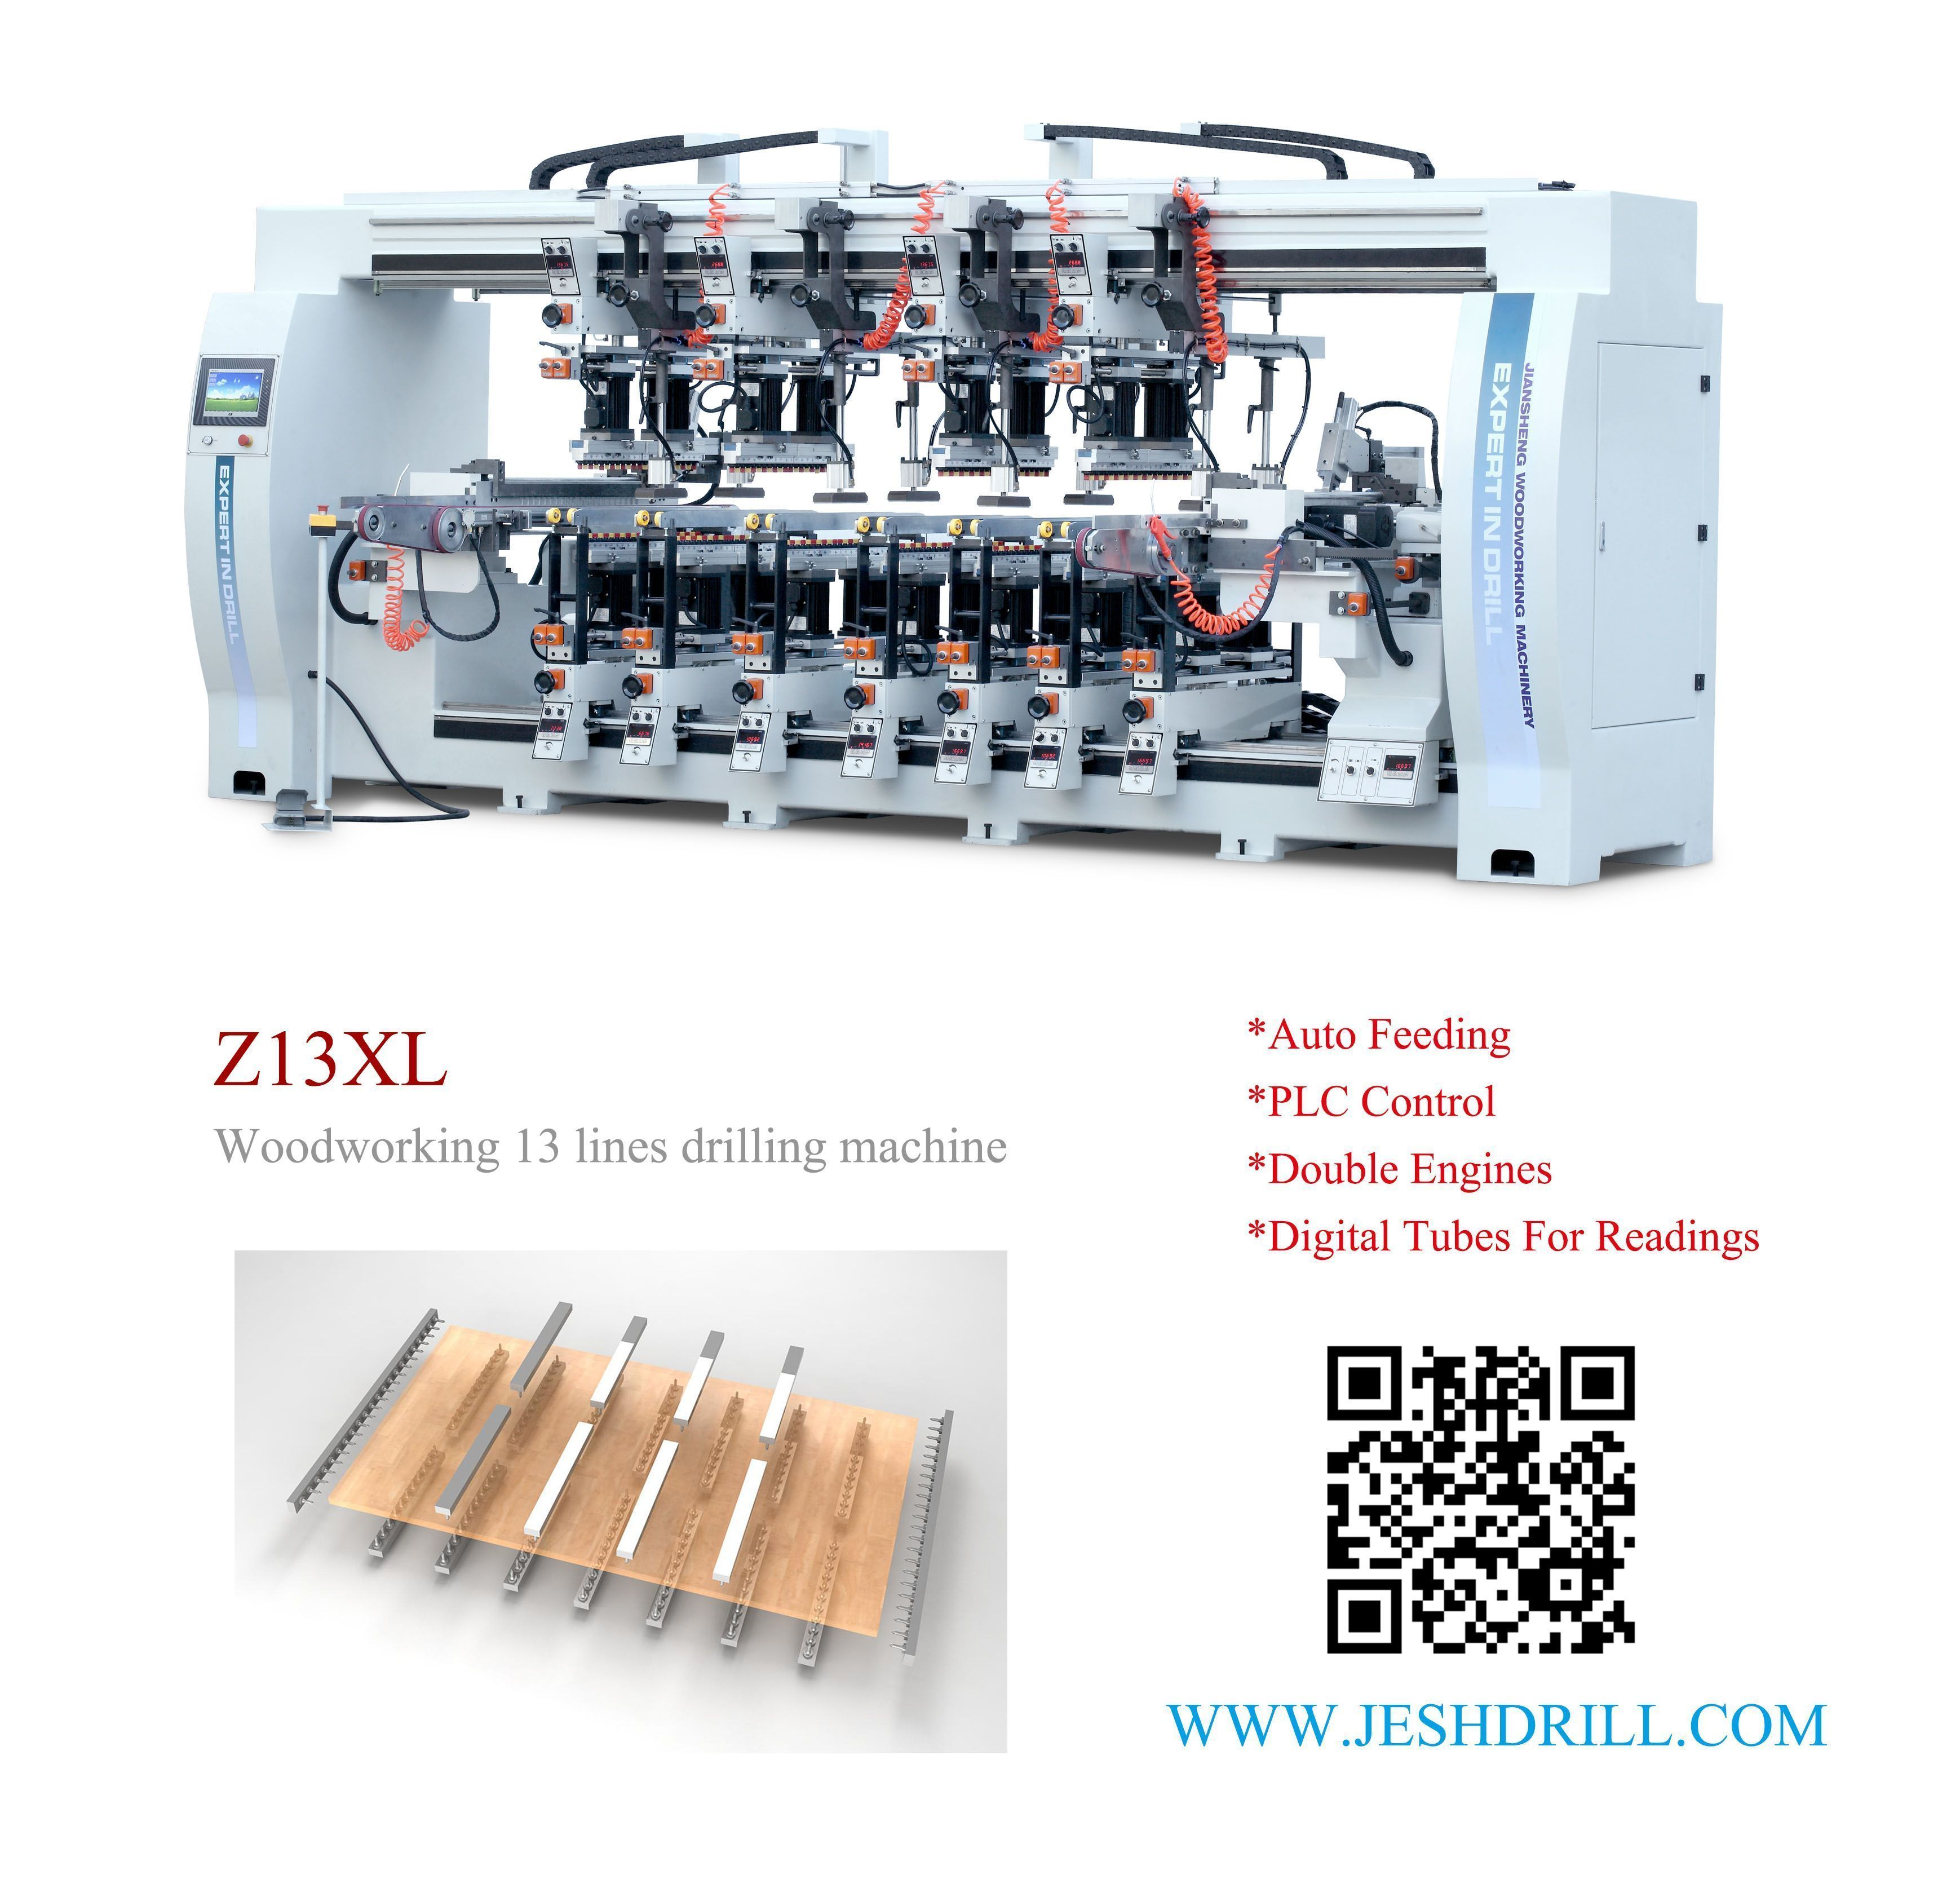 wood fast drilling machine with auto feeding ,more info in